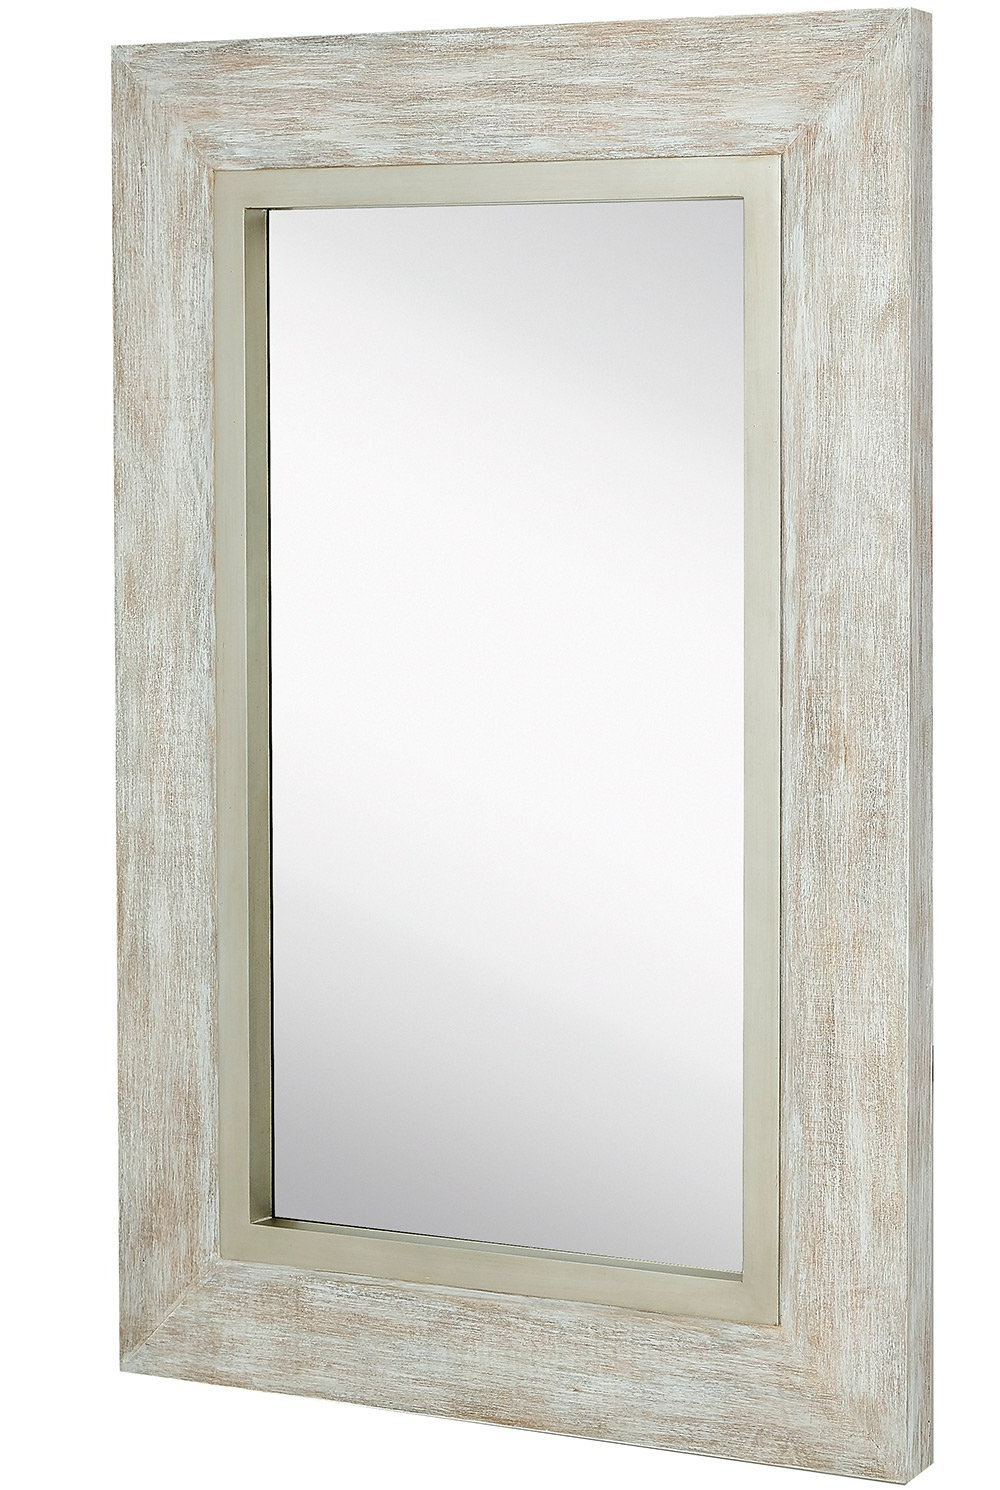 Most Recent Hamilton Hills Large White Washed Framed Mirror (View 18 of 20)